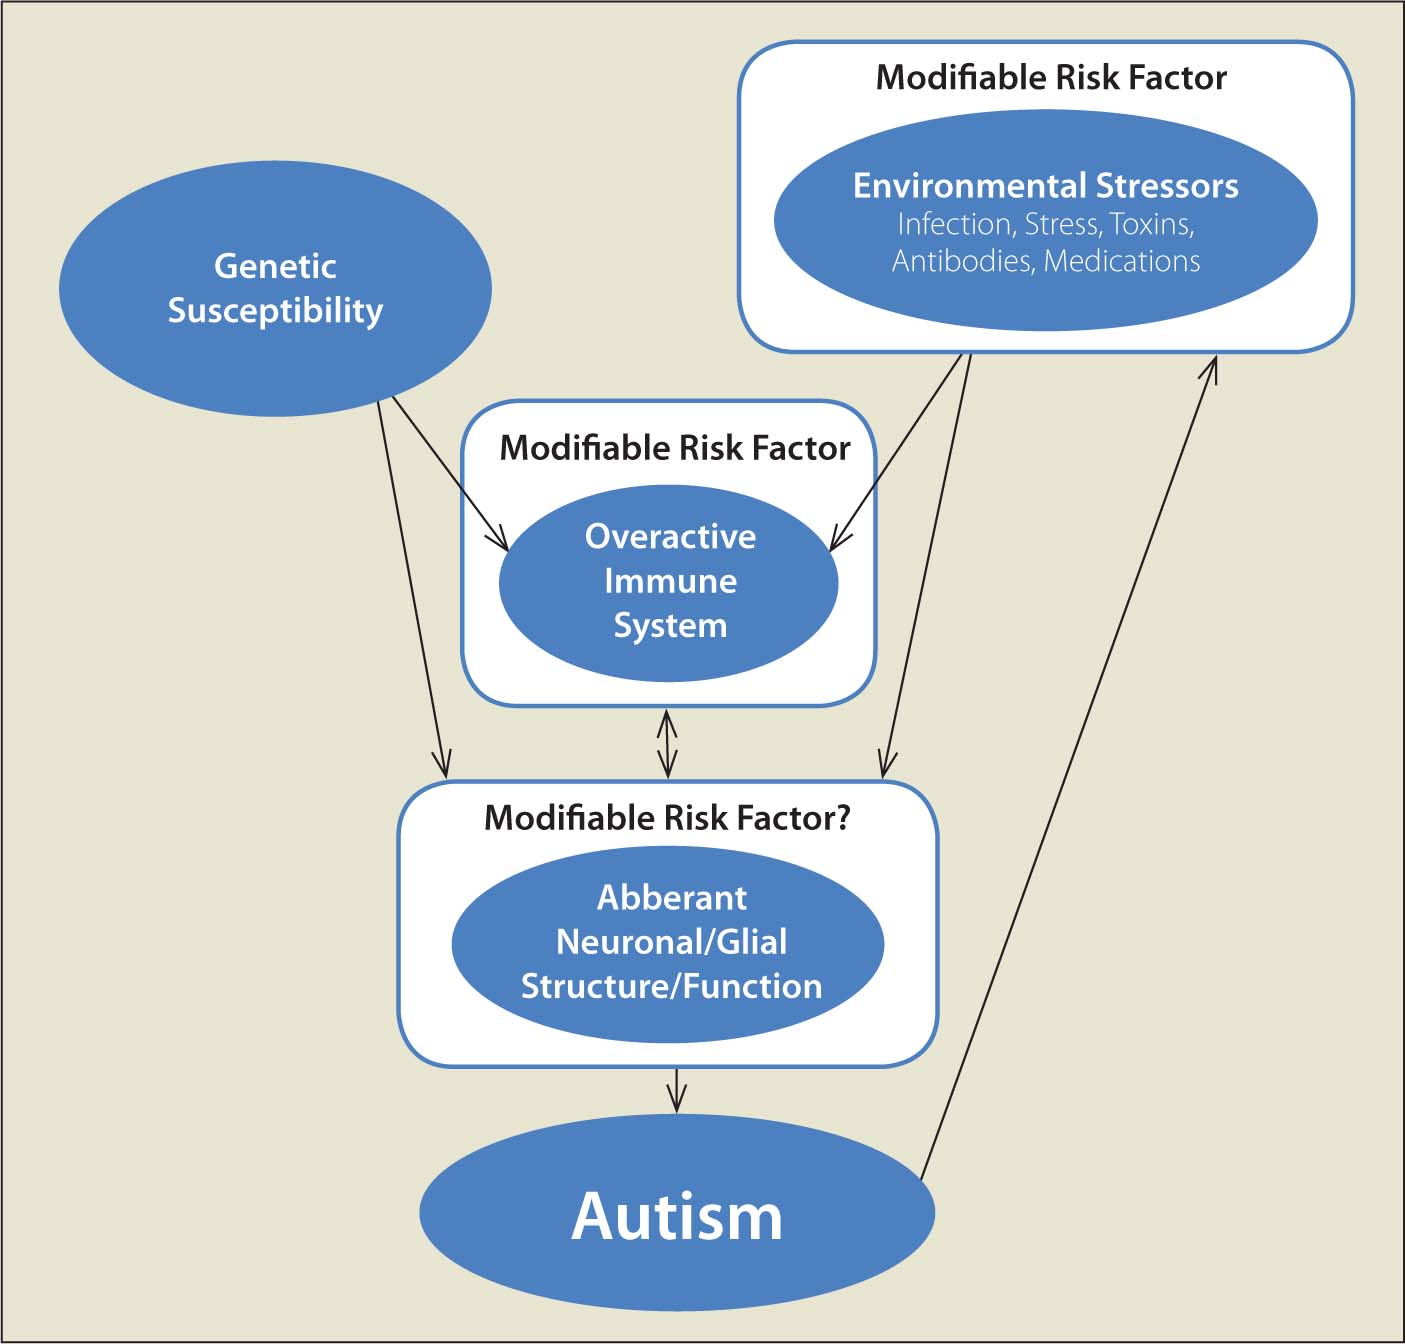 Model of genetic and environmental causes of autism. Cytokines and other immune activators that affect neuronal pathways during critical periods of brain development may cause some of the core dysfunctional symptoms found in autism.Image courtesy of Laura N. Antar, MD, PhD. Reprinted with permission.